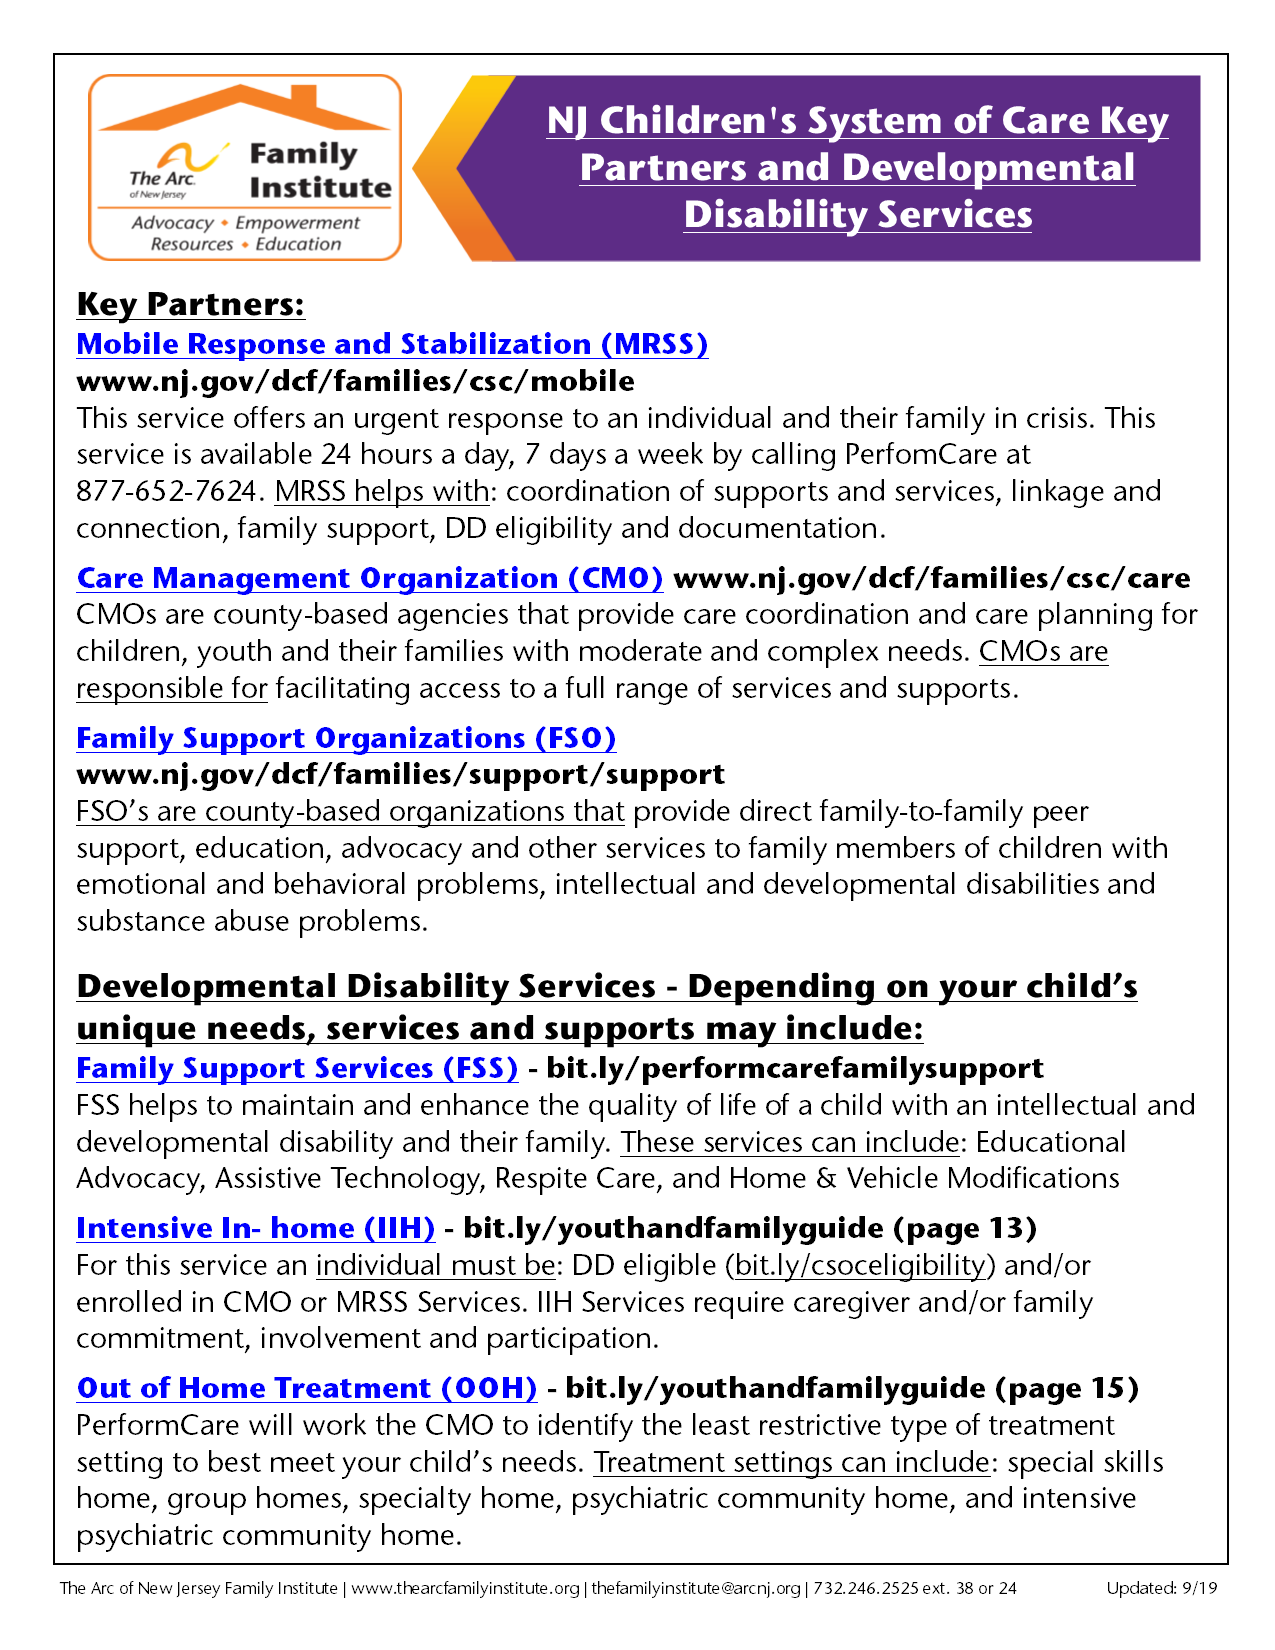 NJ Children's System of Care Key Partners and Developmental Disability Services